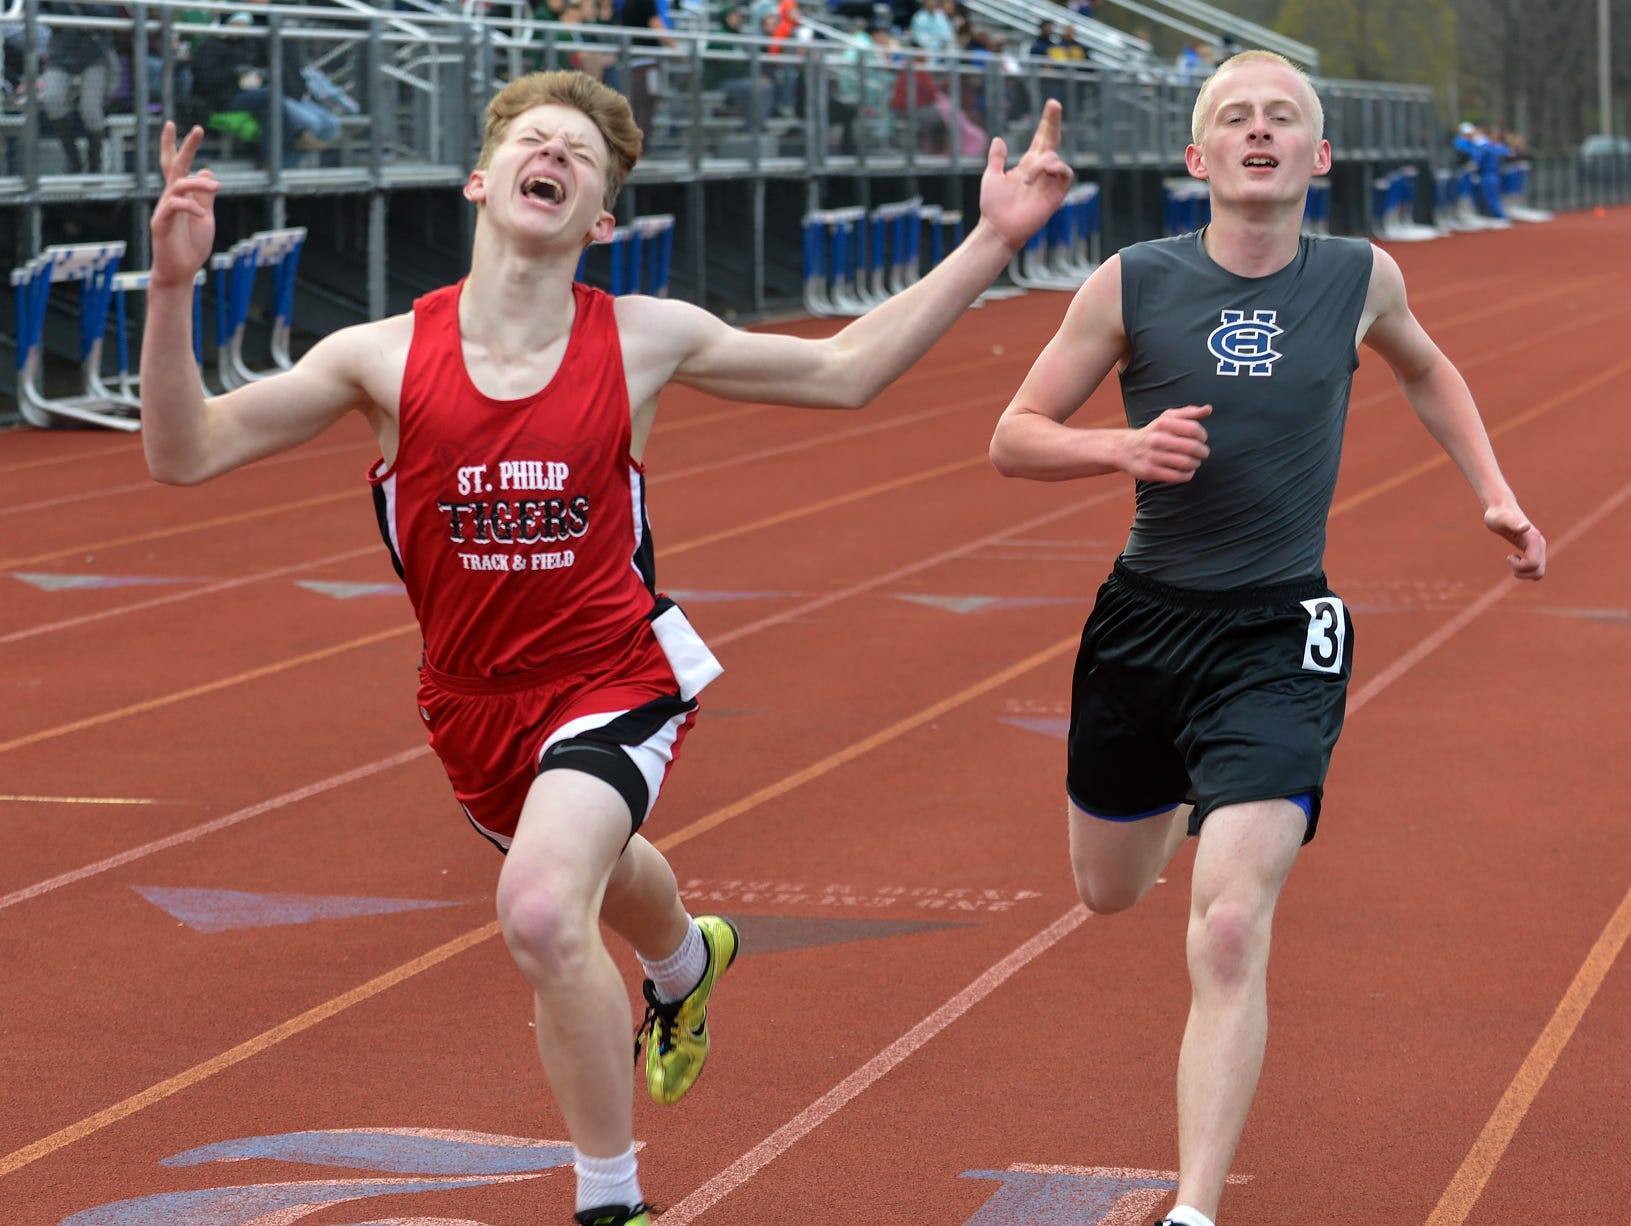 St. Philip's Kenny Wojcik lunges for the finish line as he passes Harper Creek's Devon Funk for second place in the 1600 meter run during the 2016 All City Track Meet held at Harper Creek High School Friday afternoon.